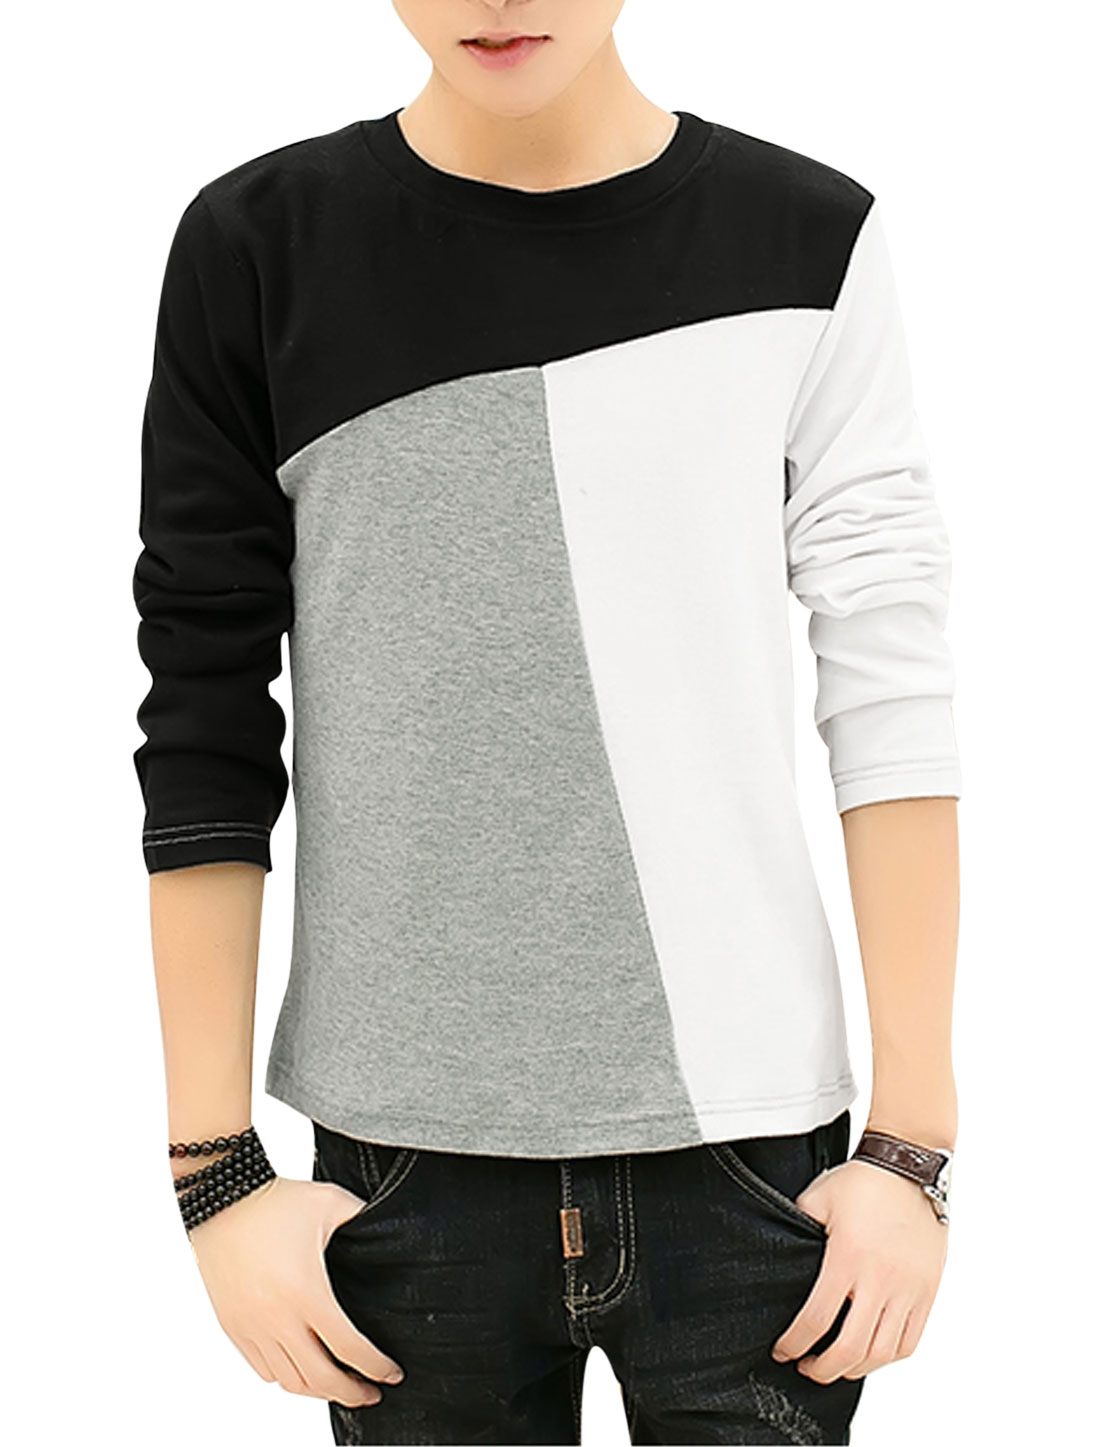 Man Color Block Round Neck Long Sleeves Leisure Tee White Black S